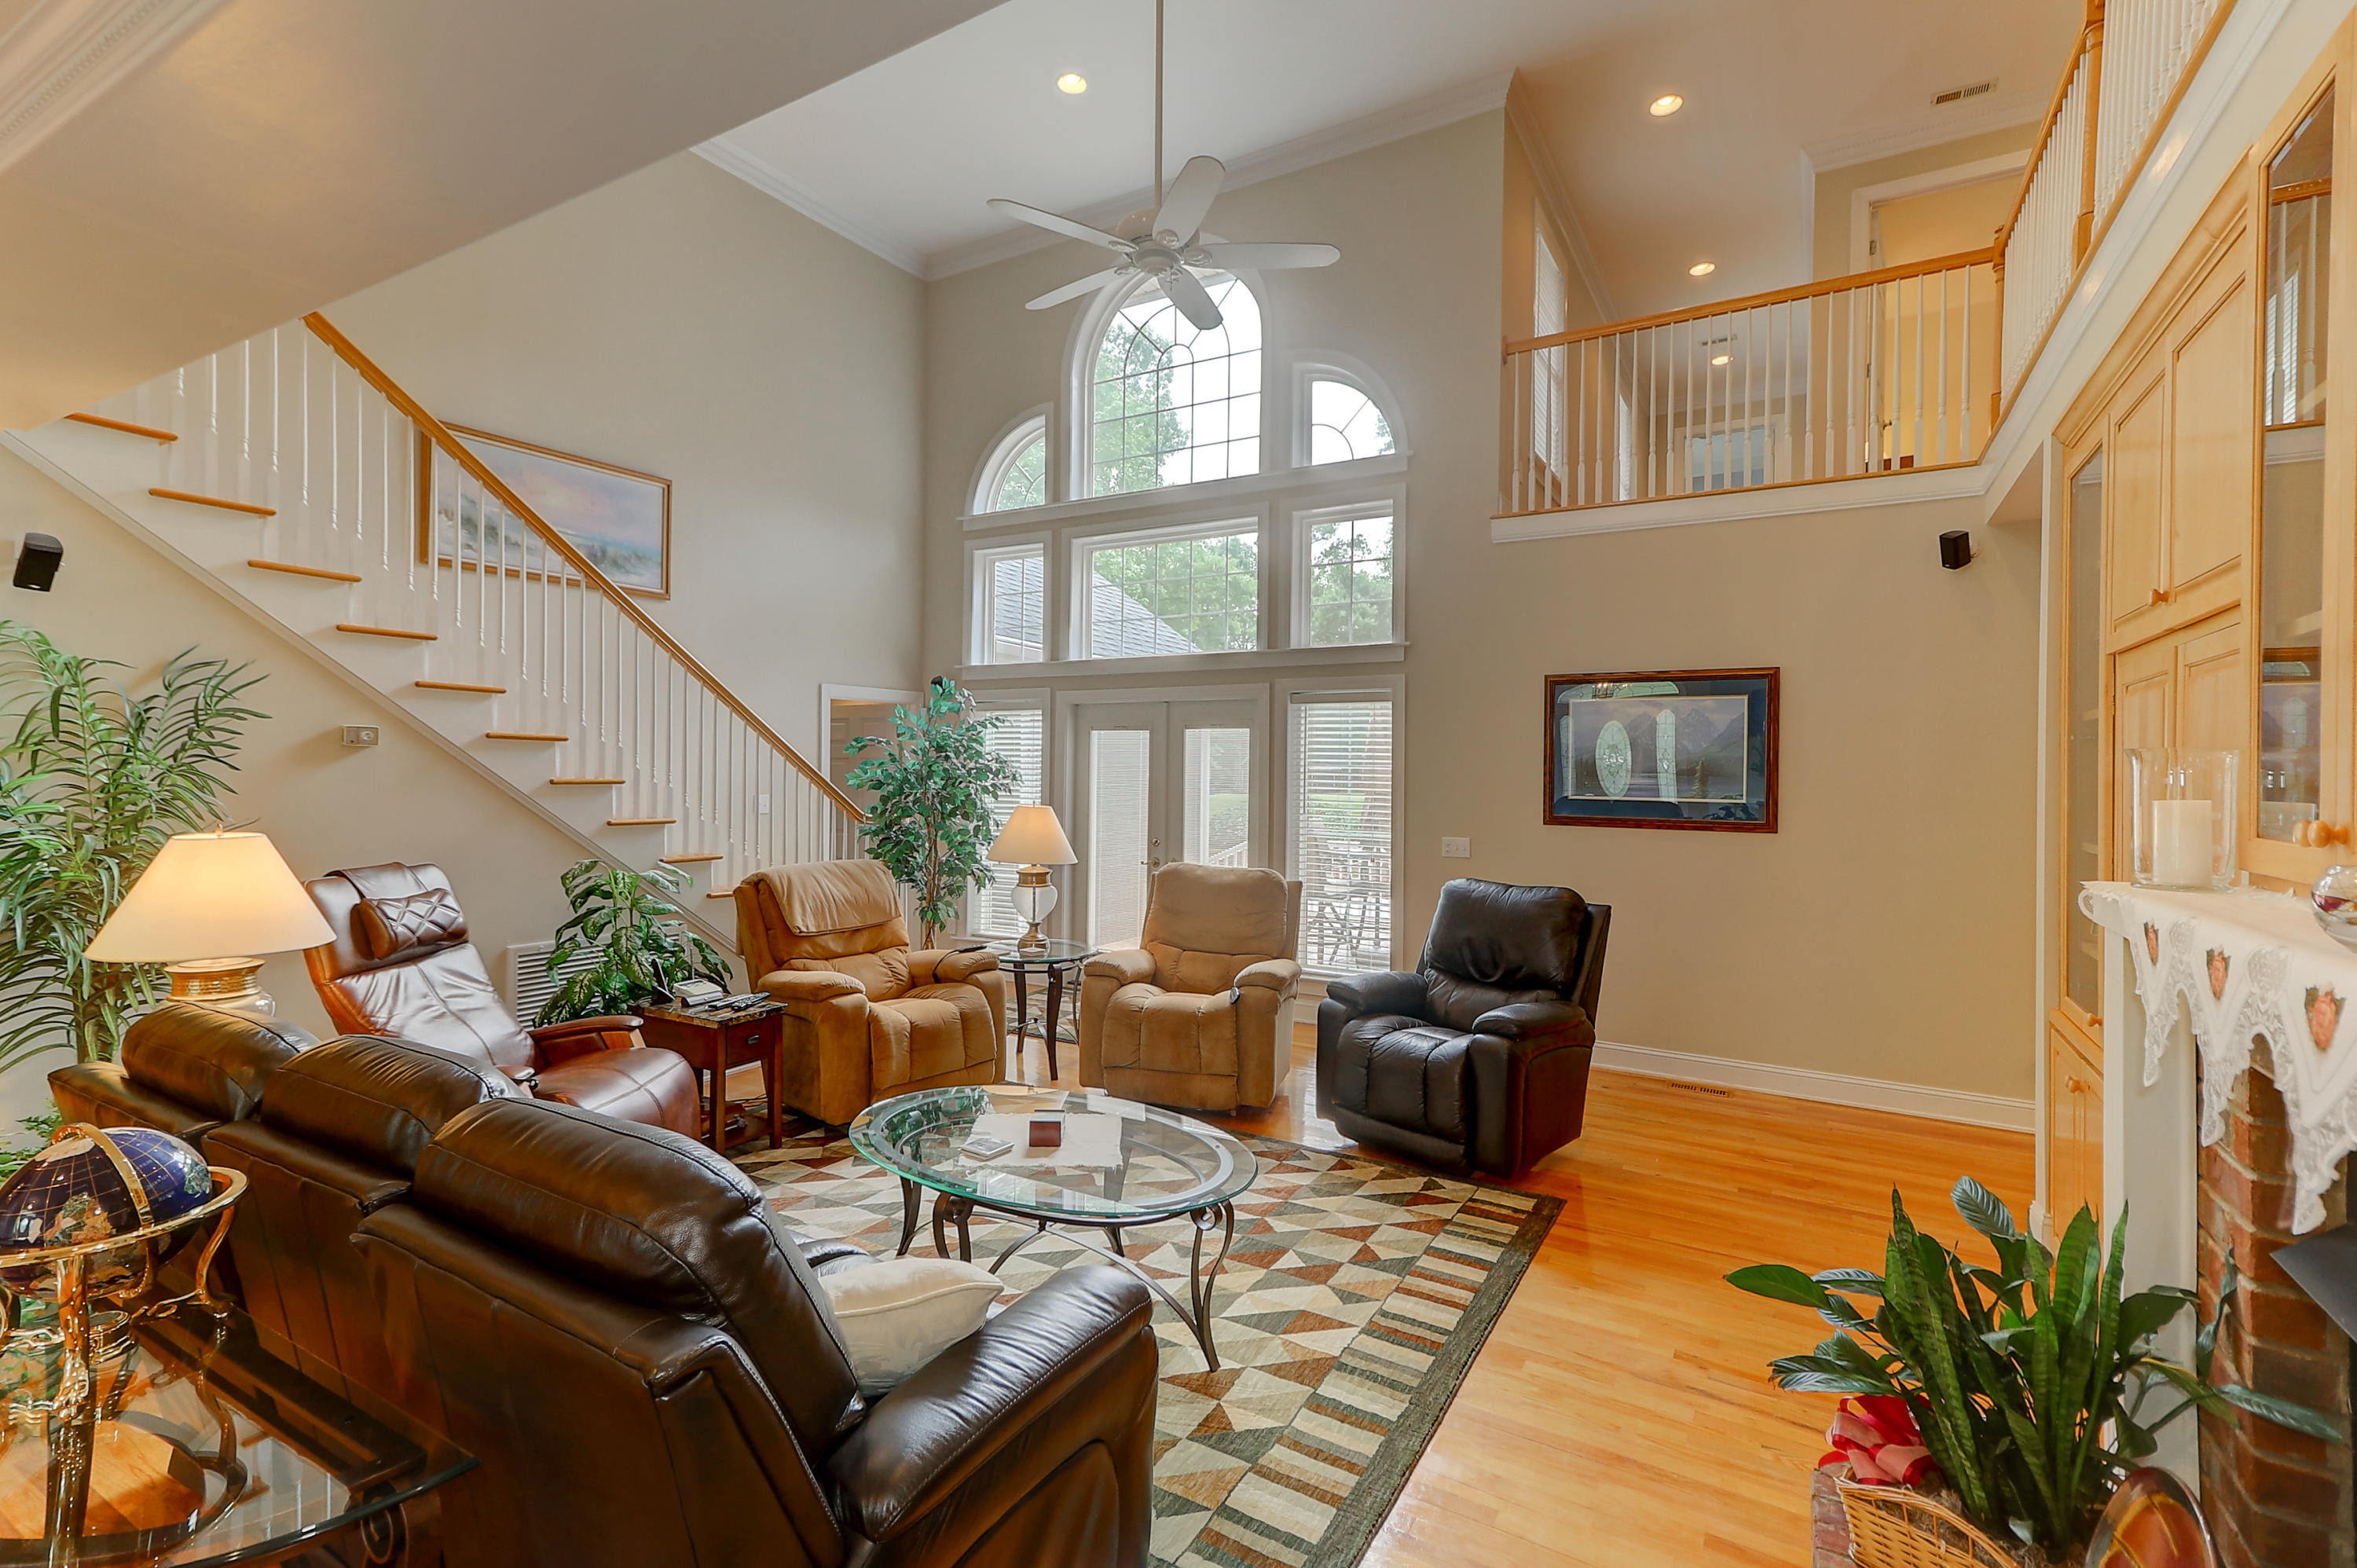 Coosaw Creek Country Club Homes For Sale - 8700 Fairway Woods, North Charleston, SC - 59